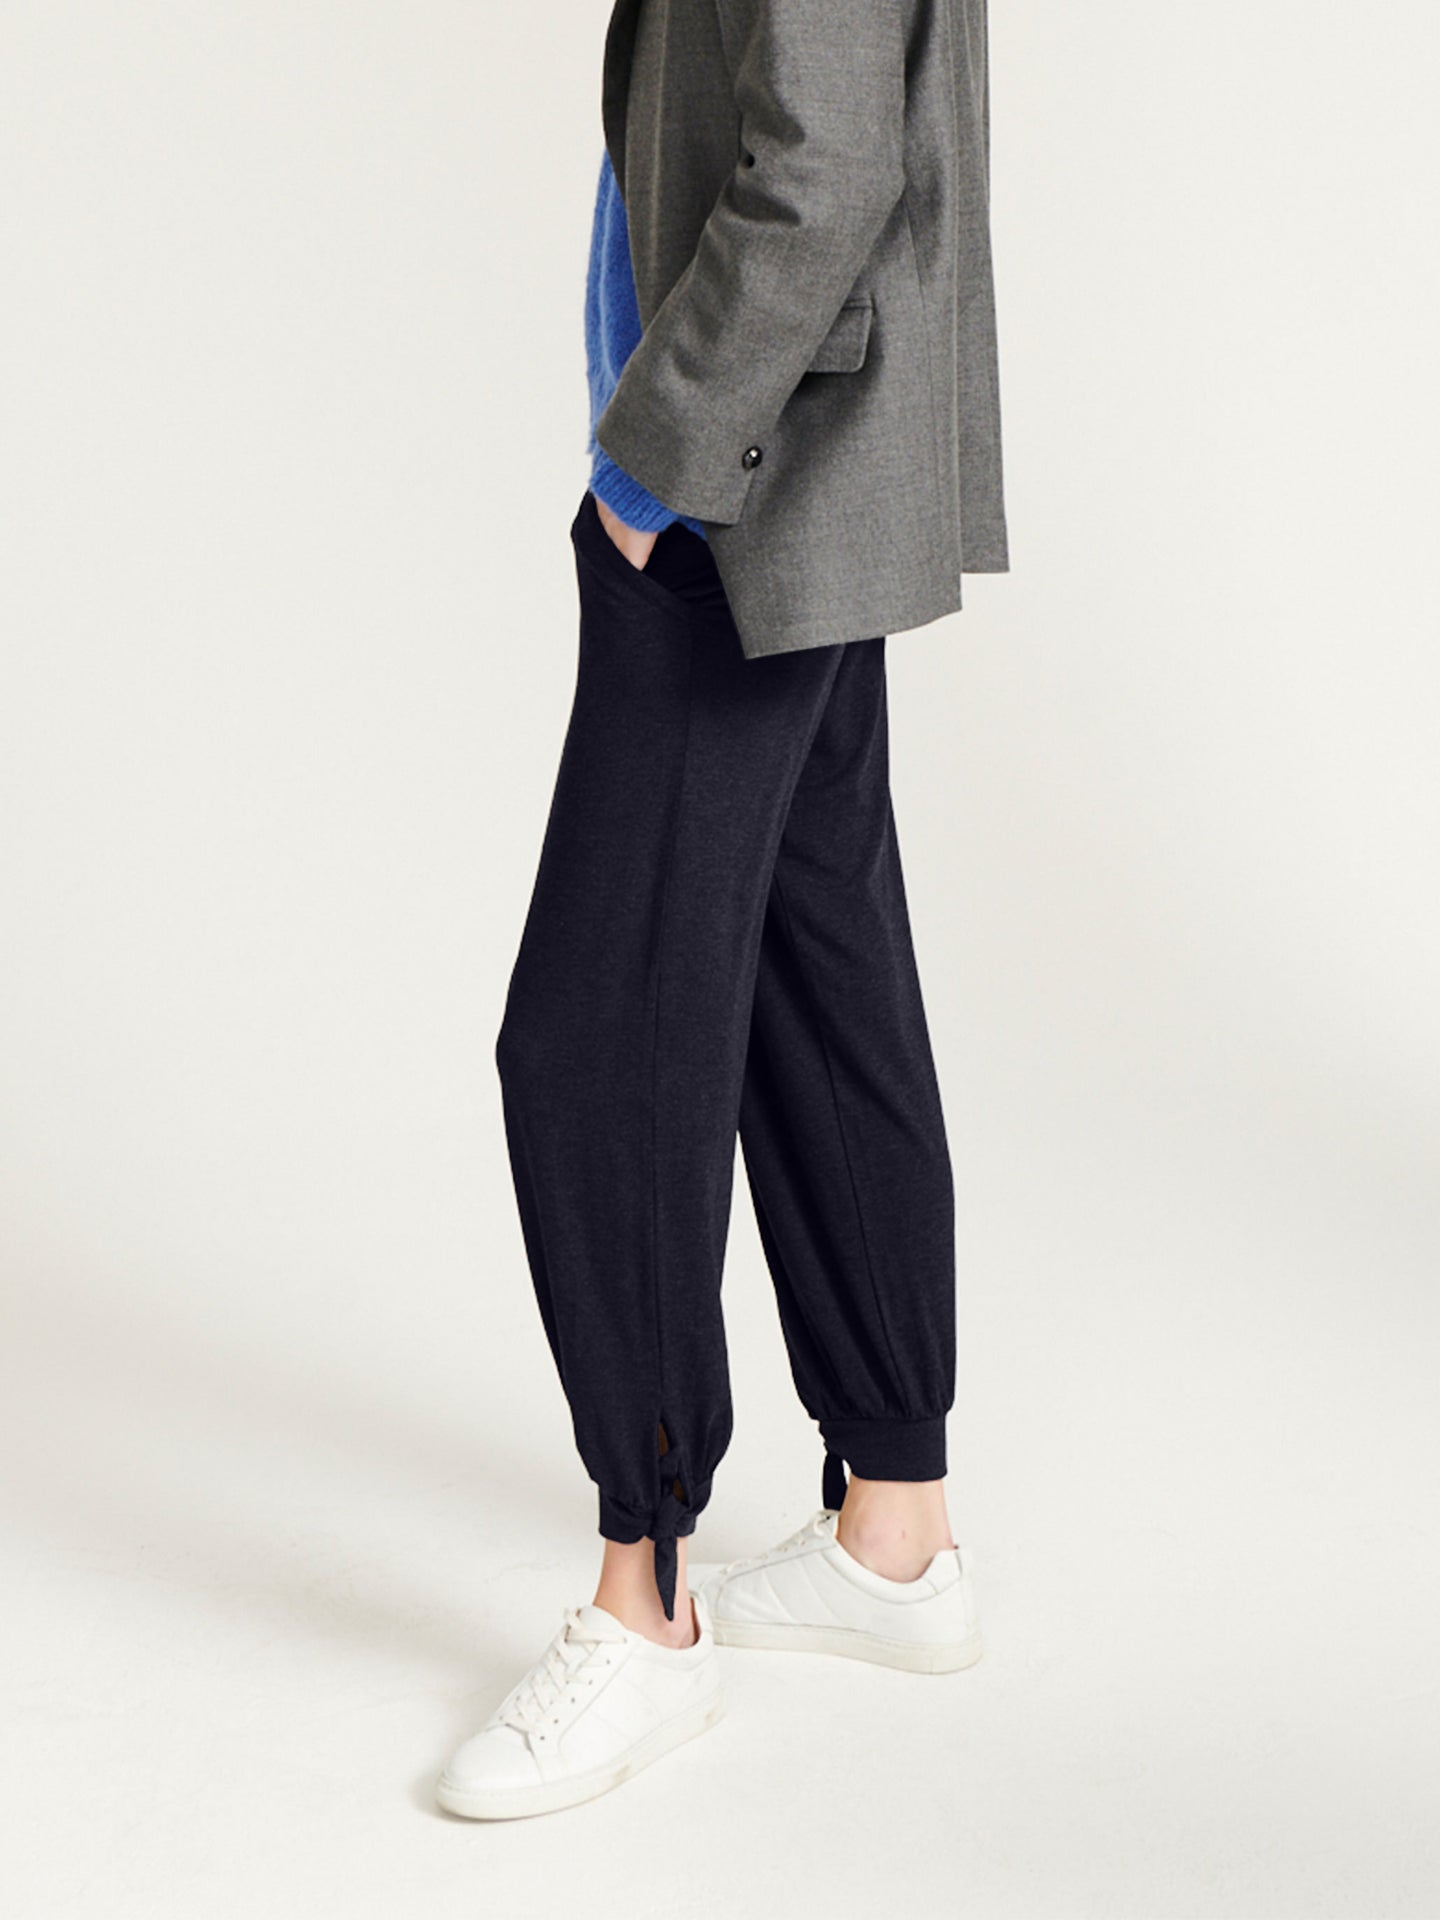 Anmari jersey ankle tie pant